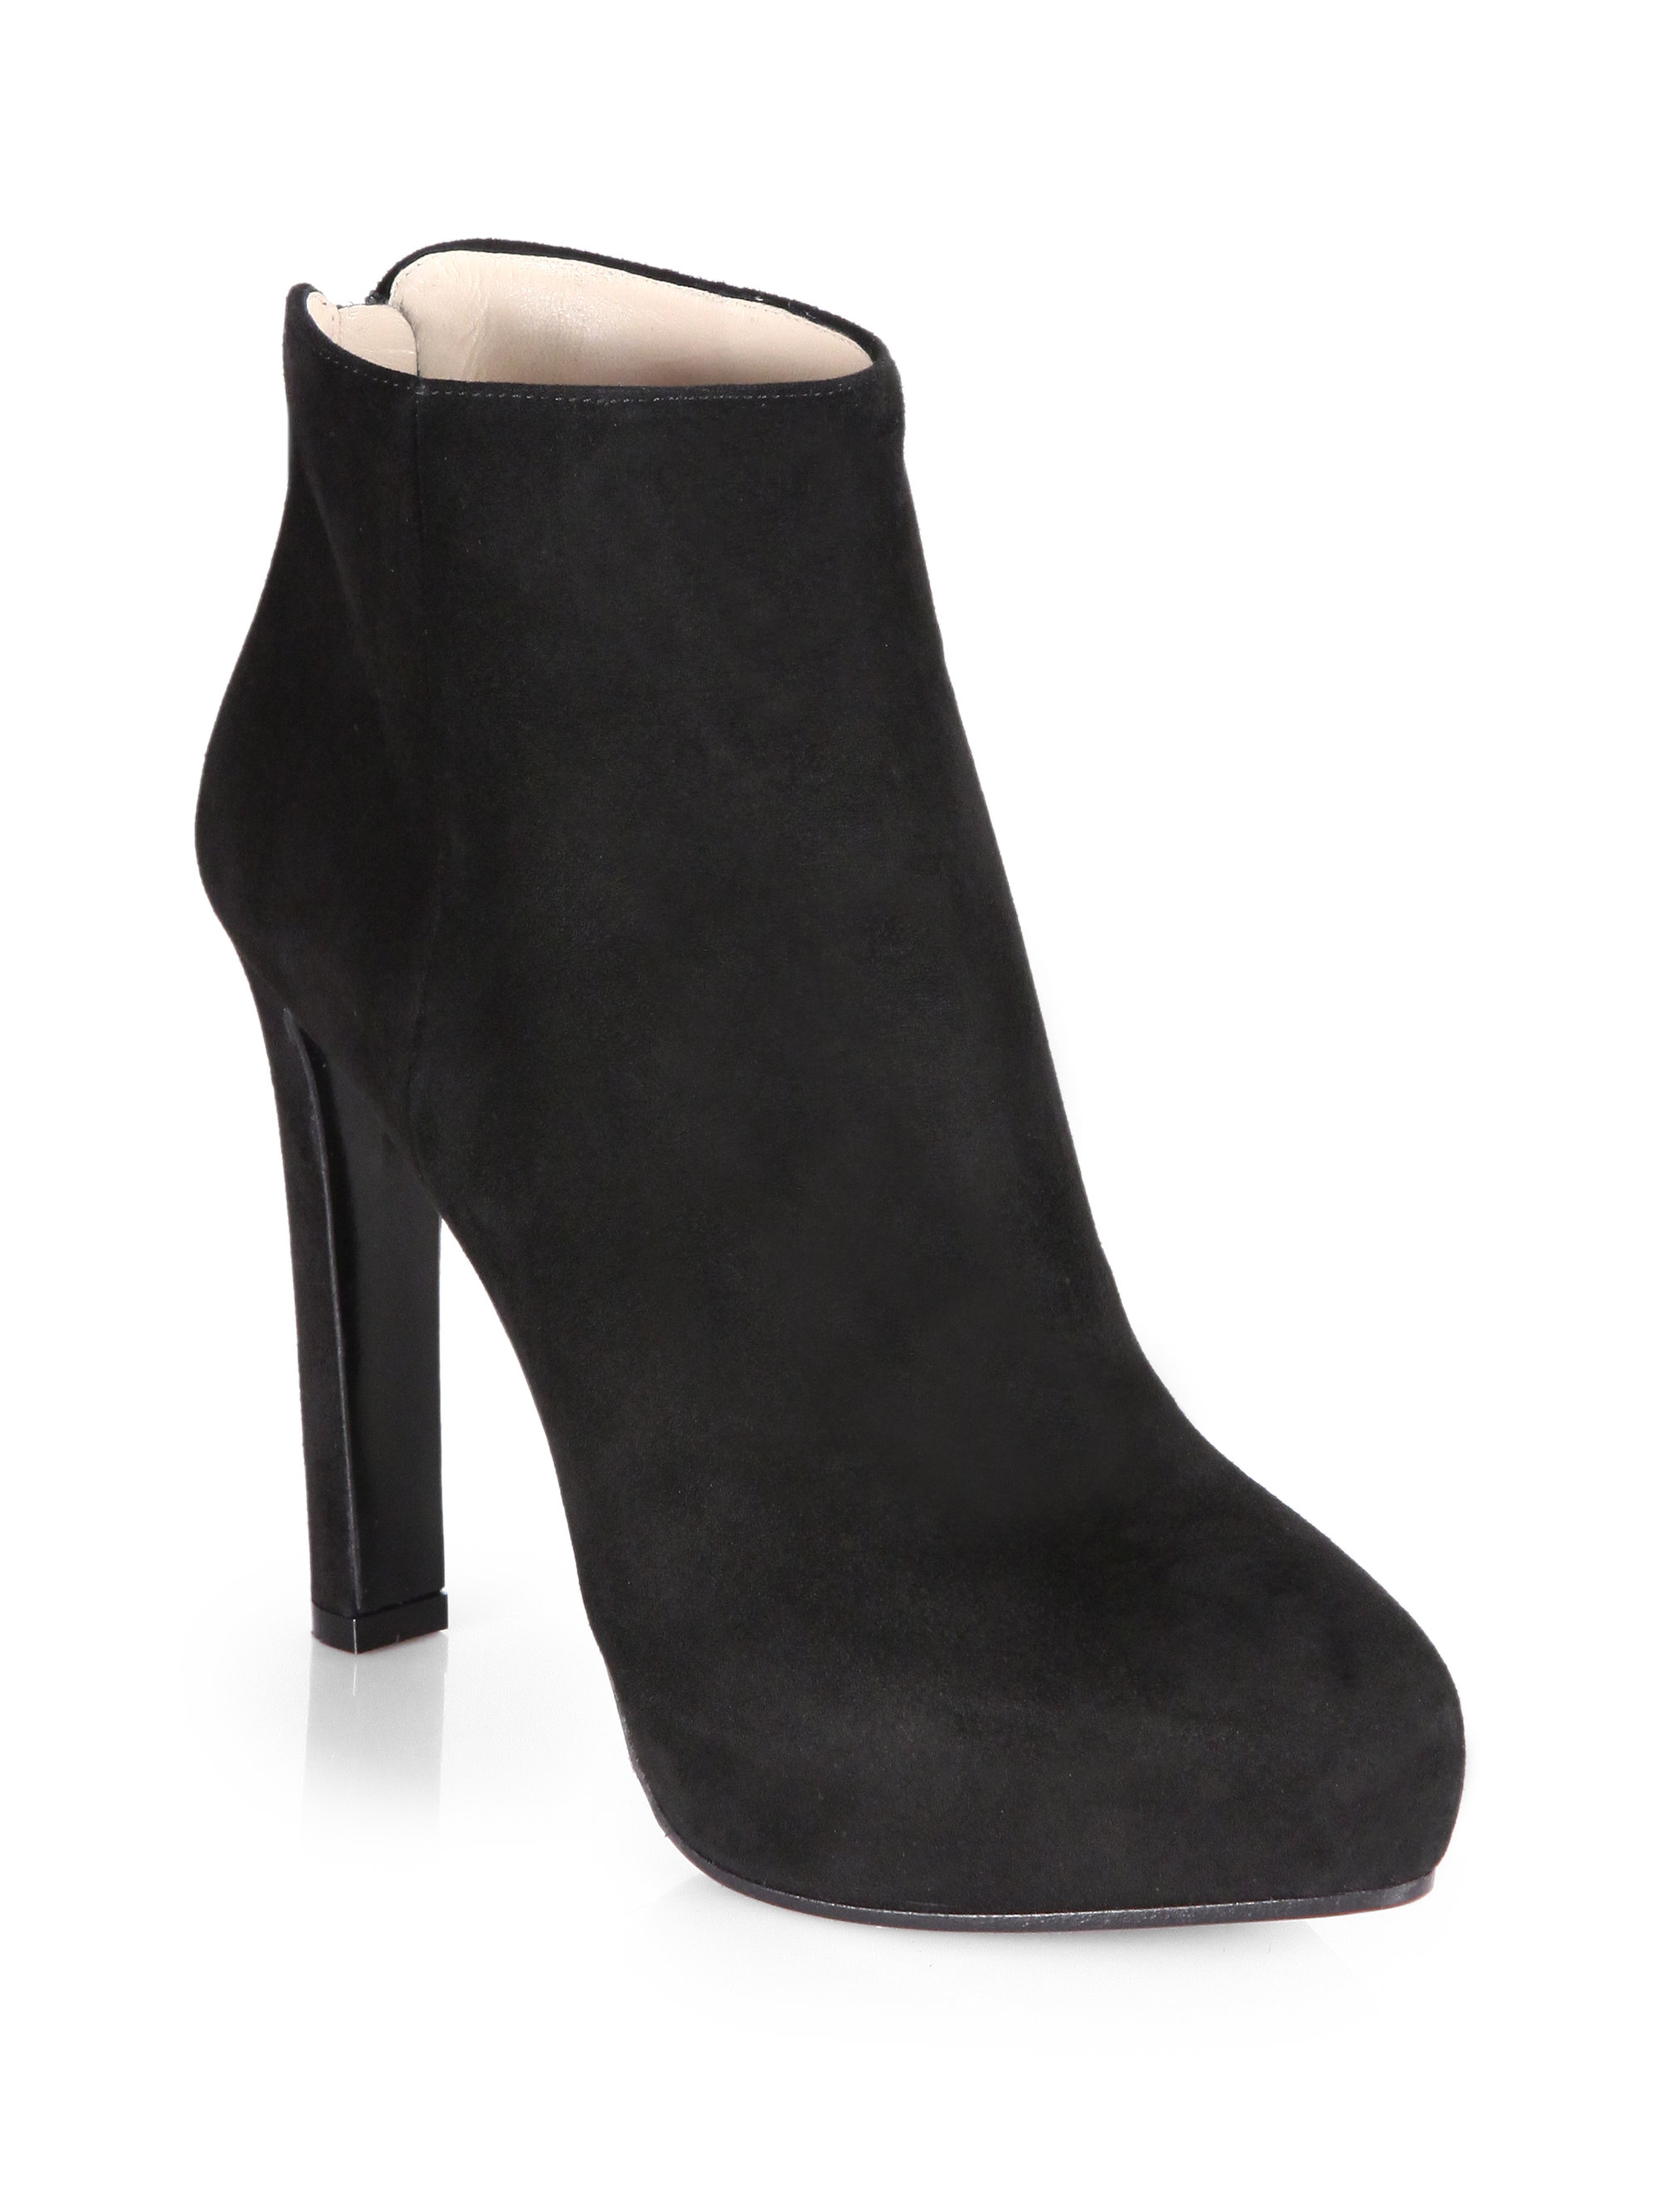 e522758854a Lyst - Prada Suede Platform Ankle Boots in Black